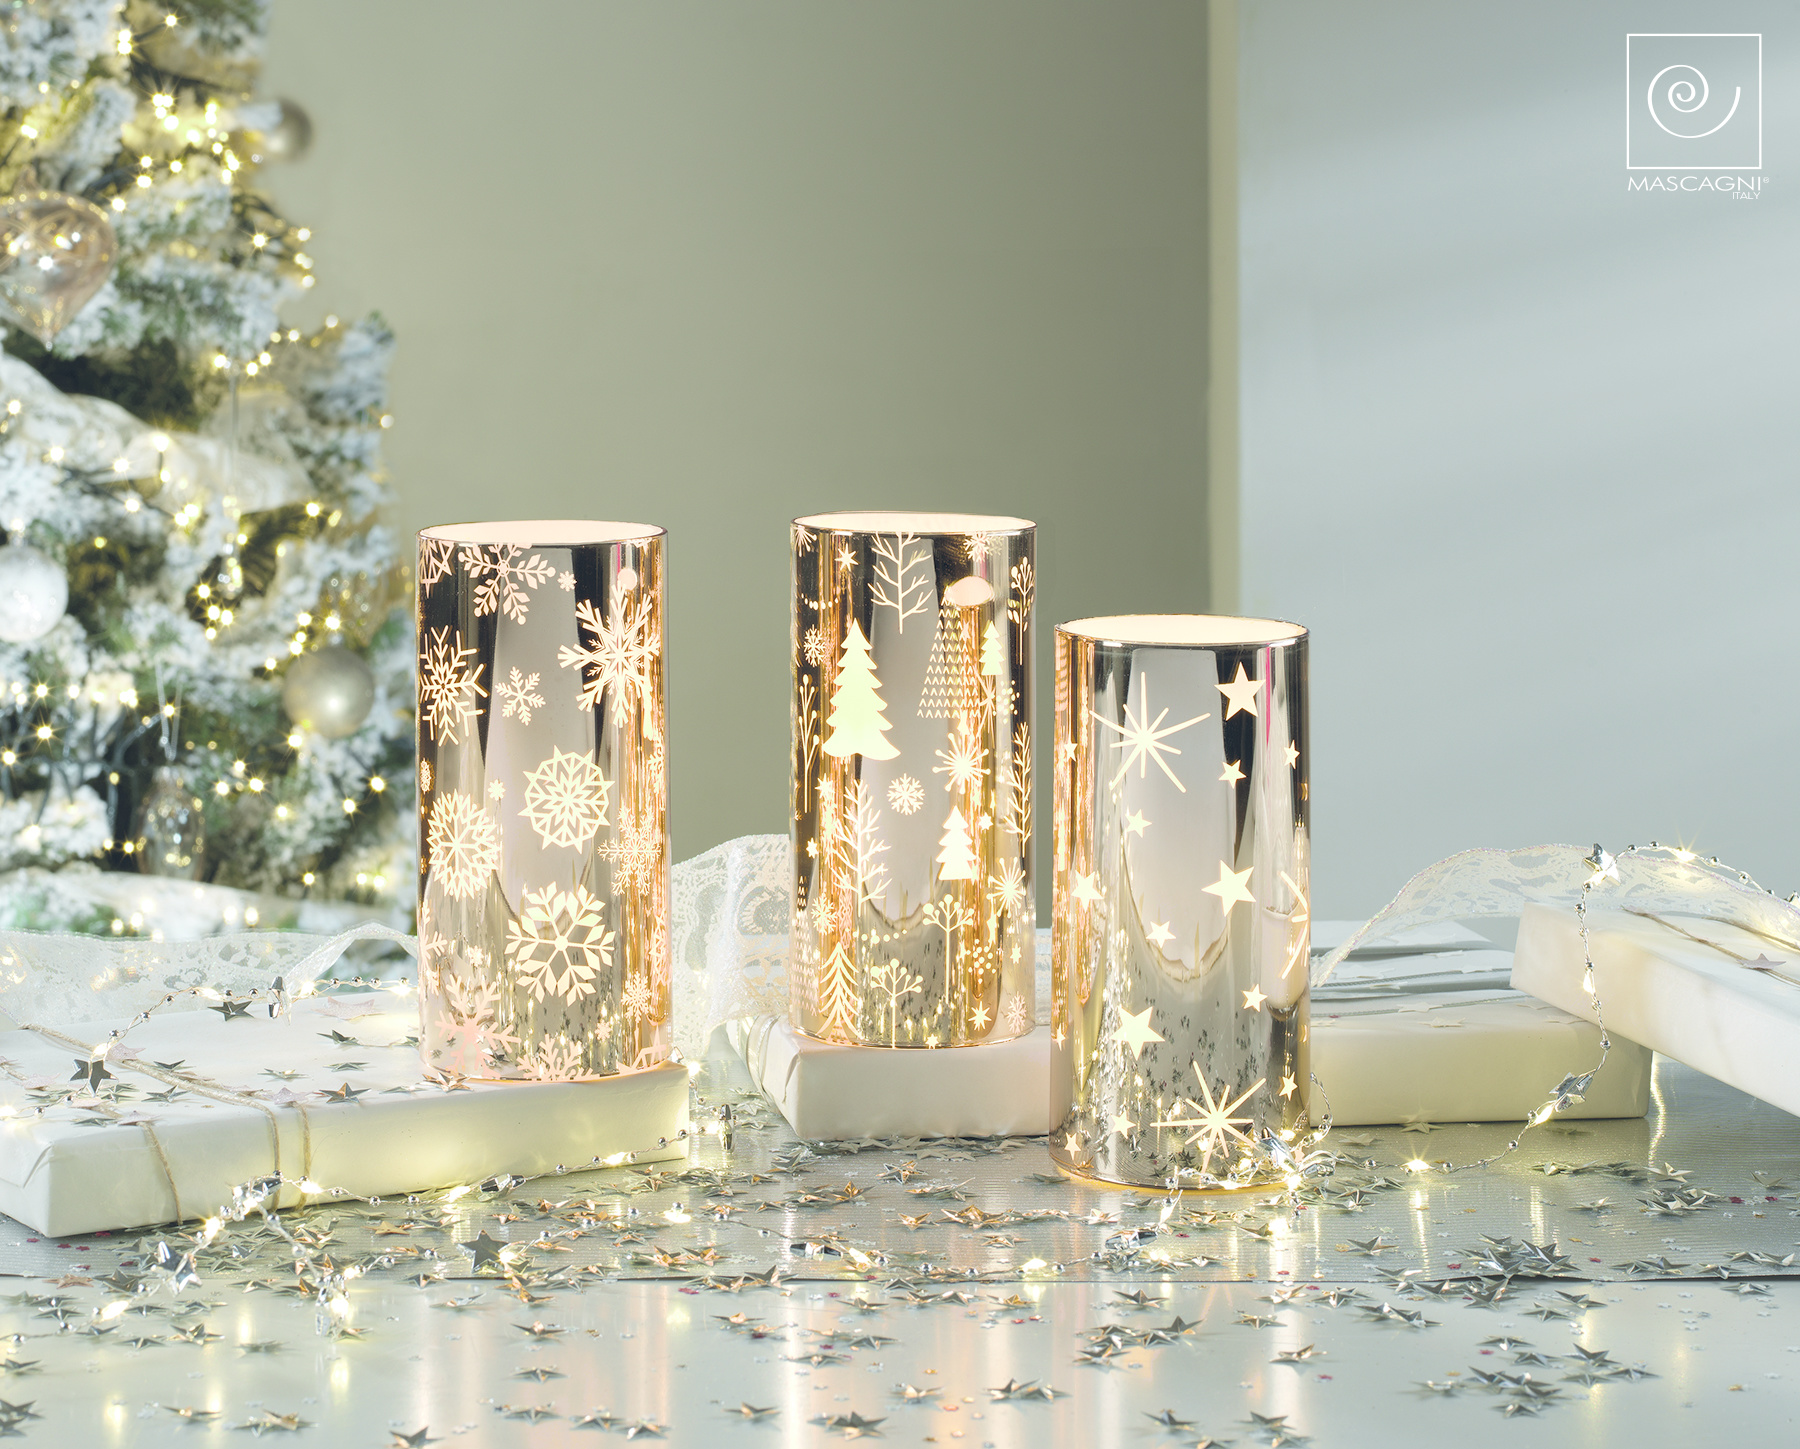 Art Mascagni SET 3 LED CANDLE